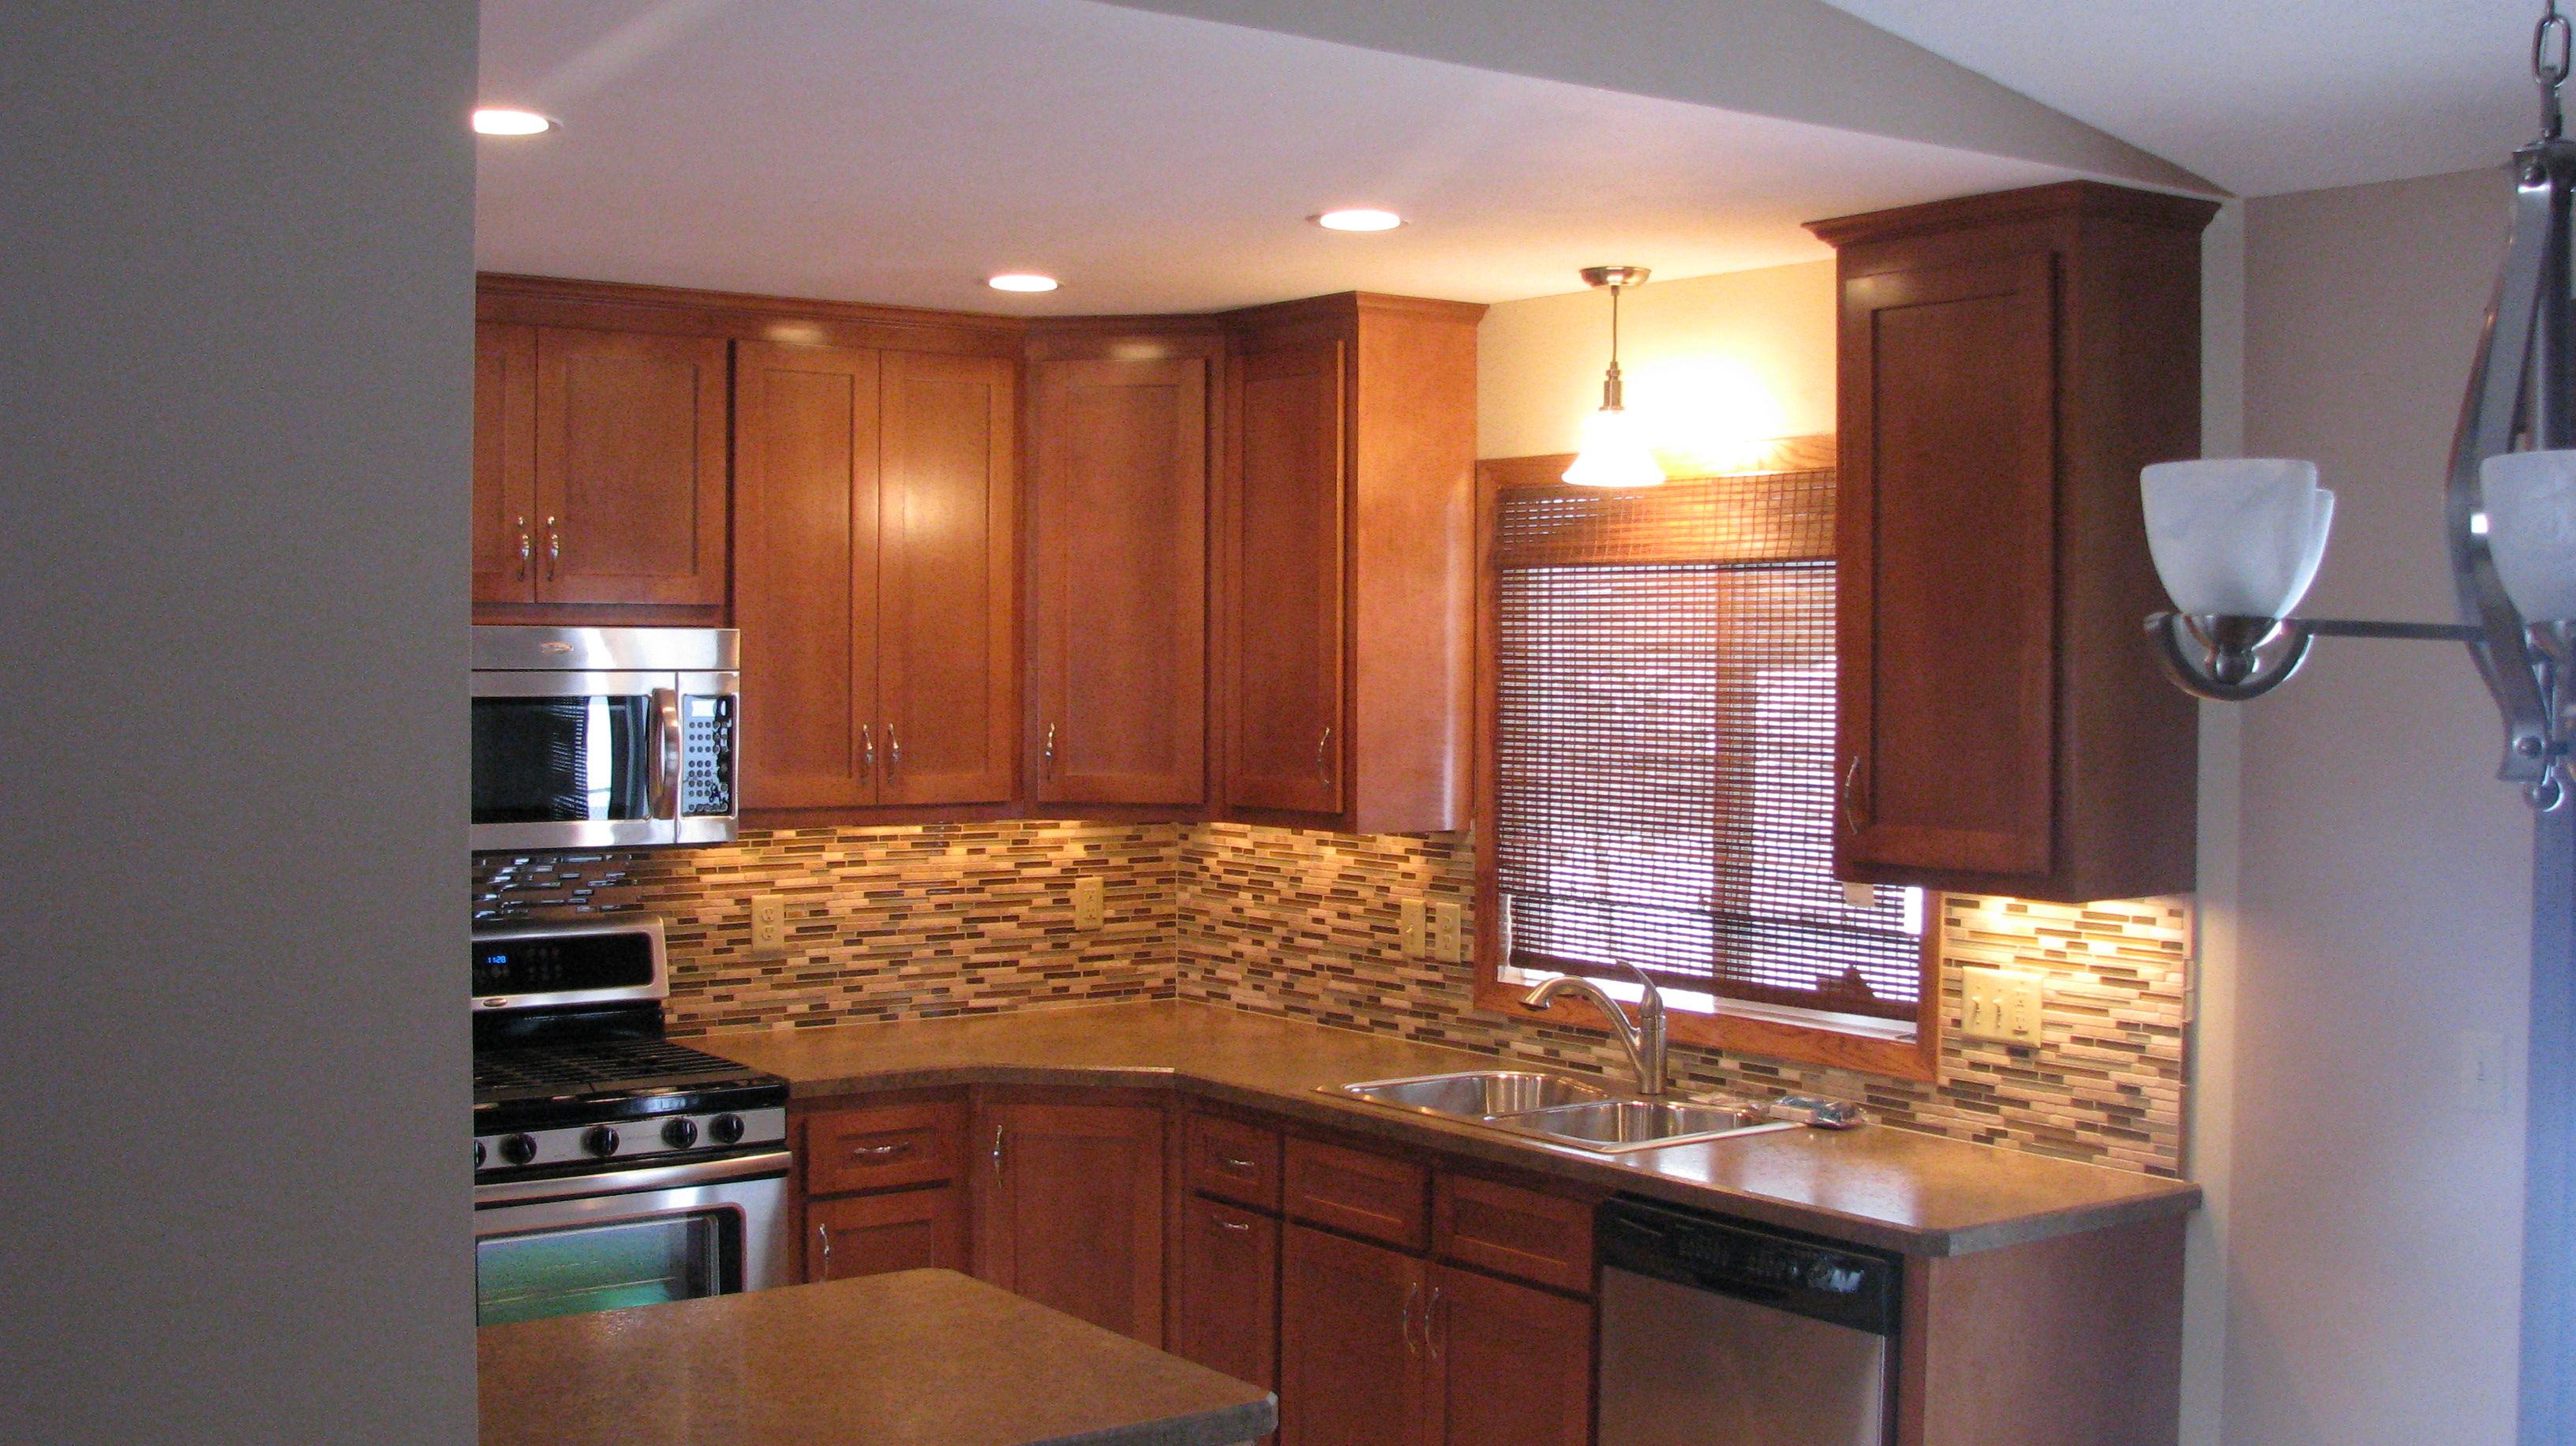 Split entry kitchen remodel remodeling kitchen for Kitchen remodel ideas for older homes